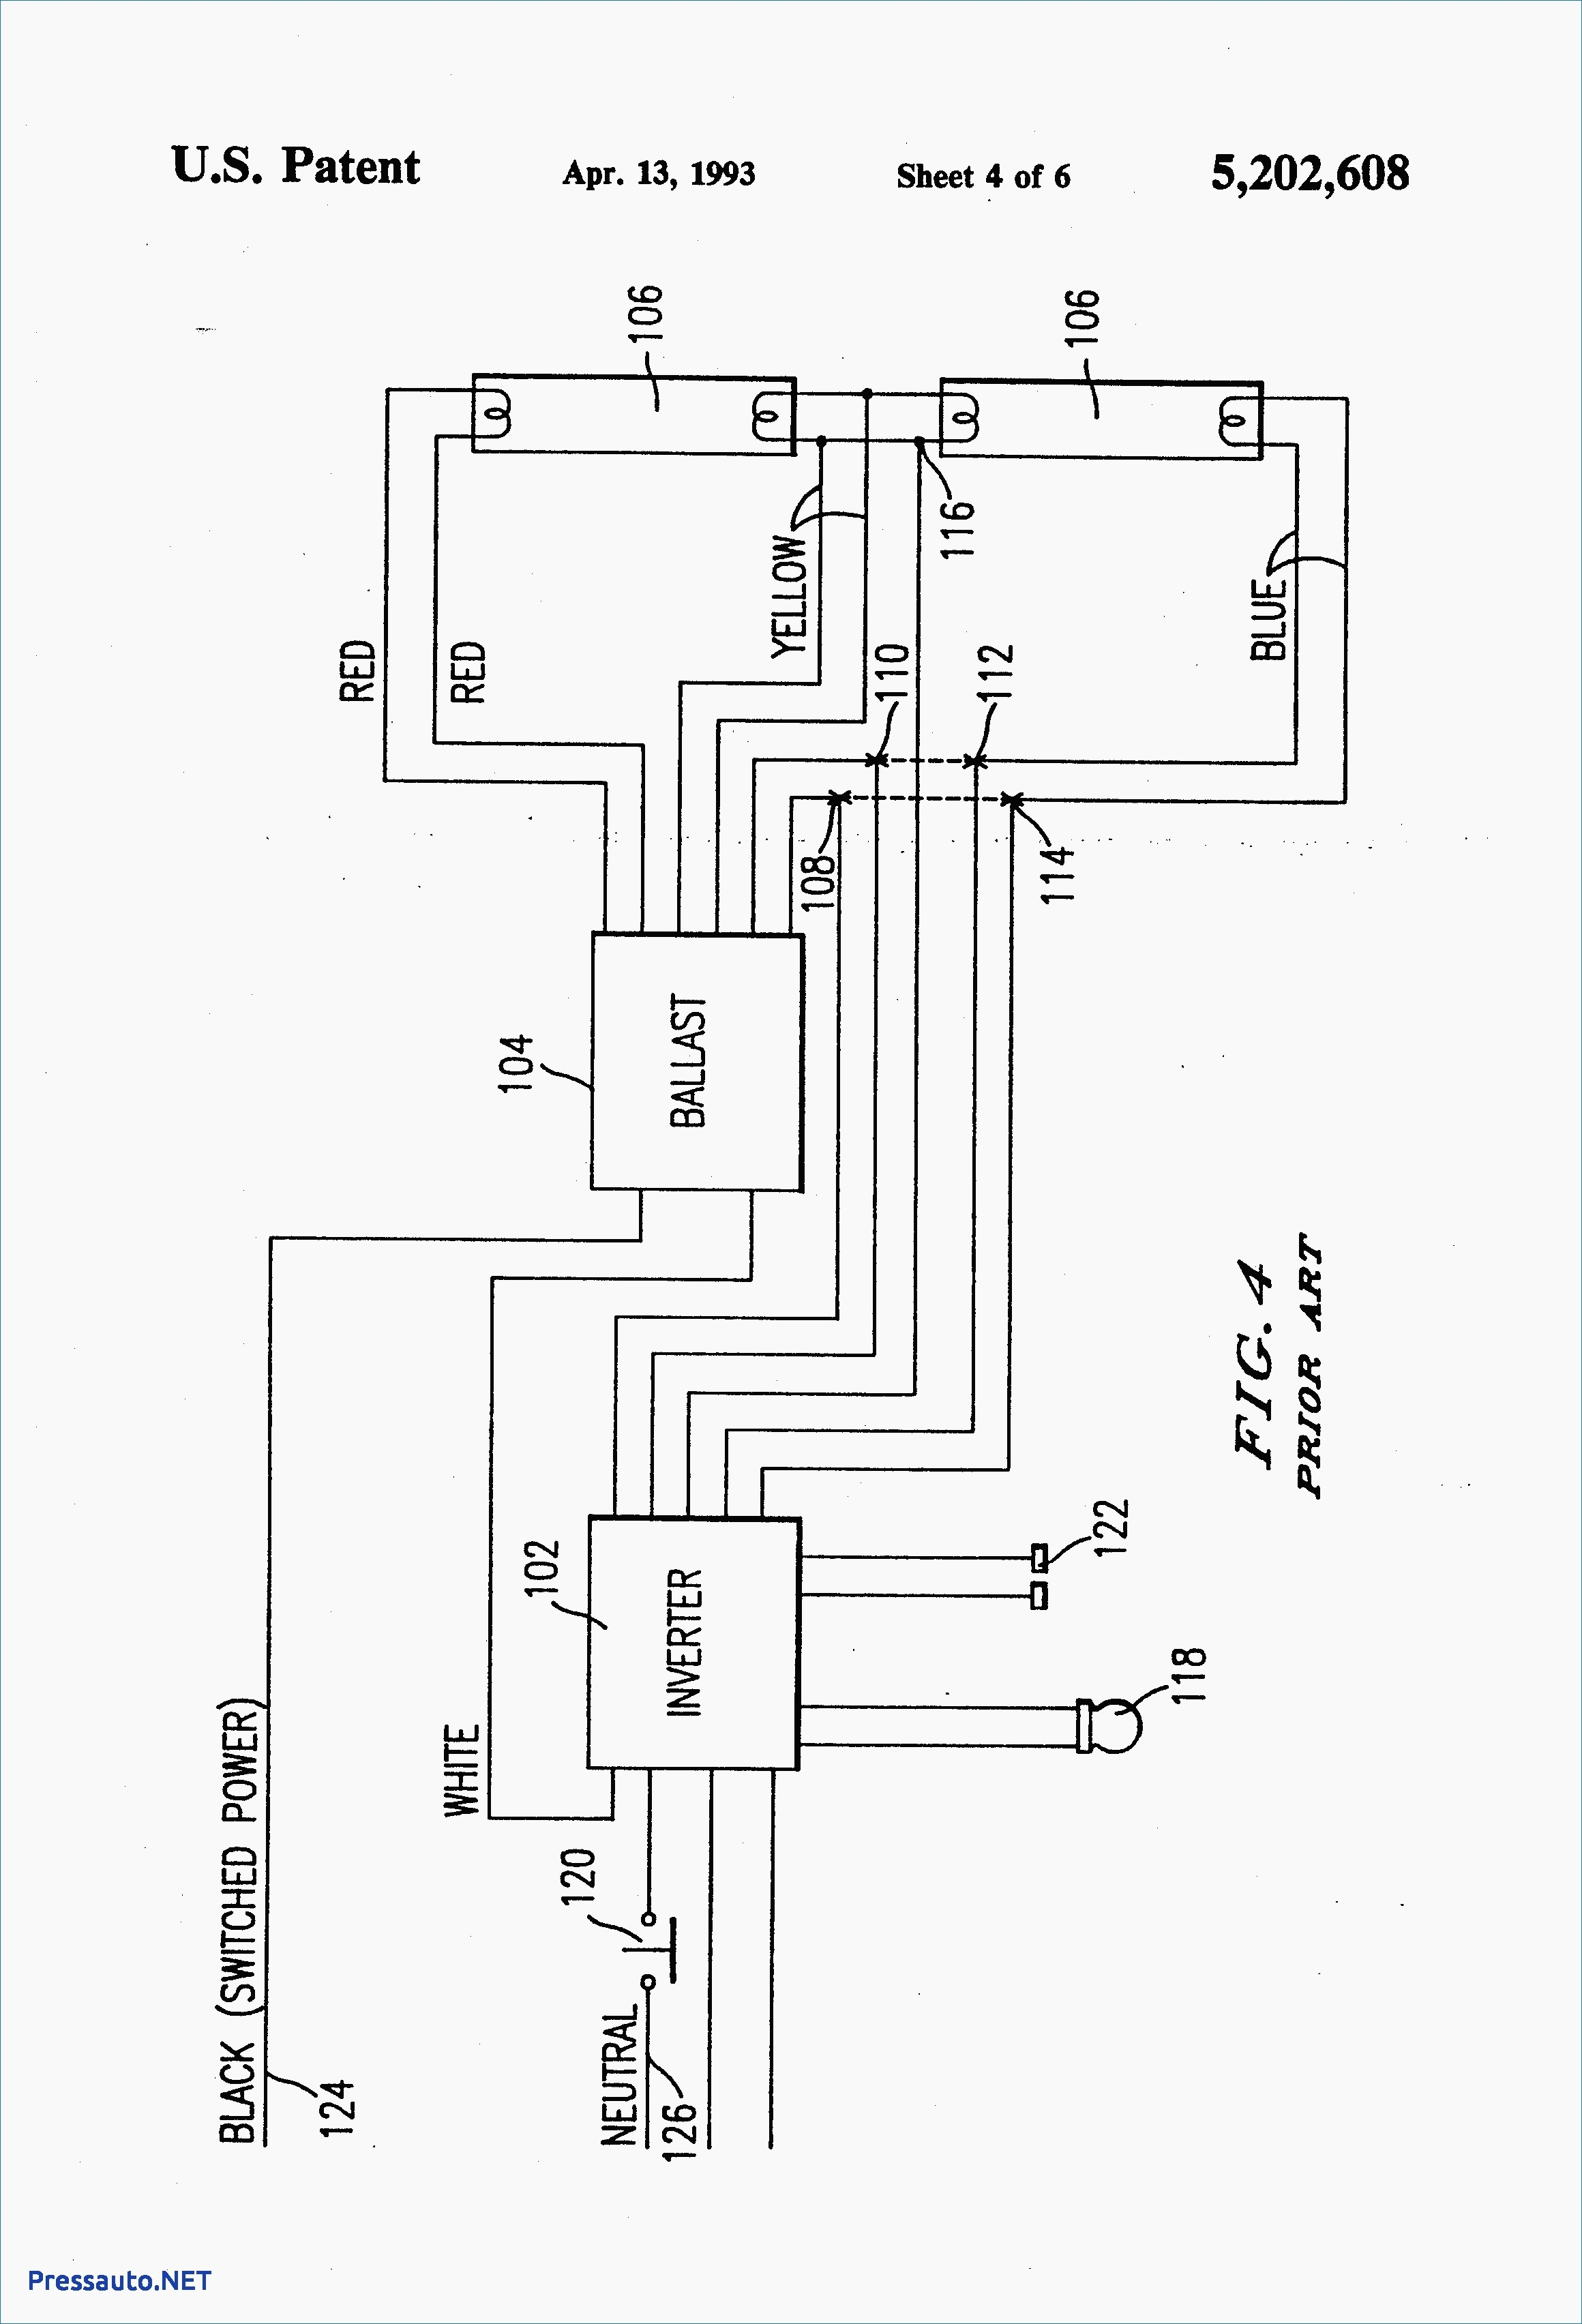 ge dc contactor wiring diagram free download eaton lighting contactor wiring diagram | free wiring diagram ge blower motor wiring diagram free download